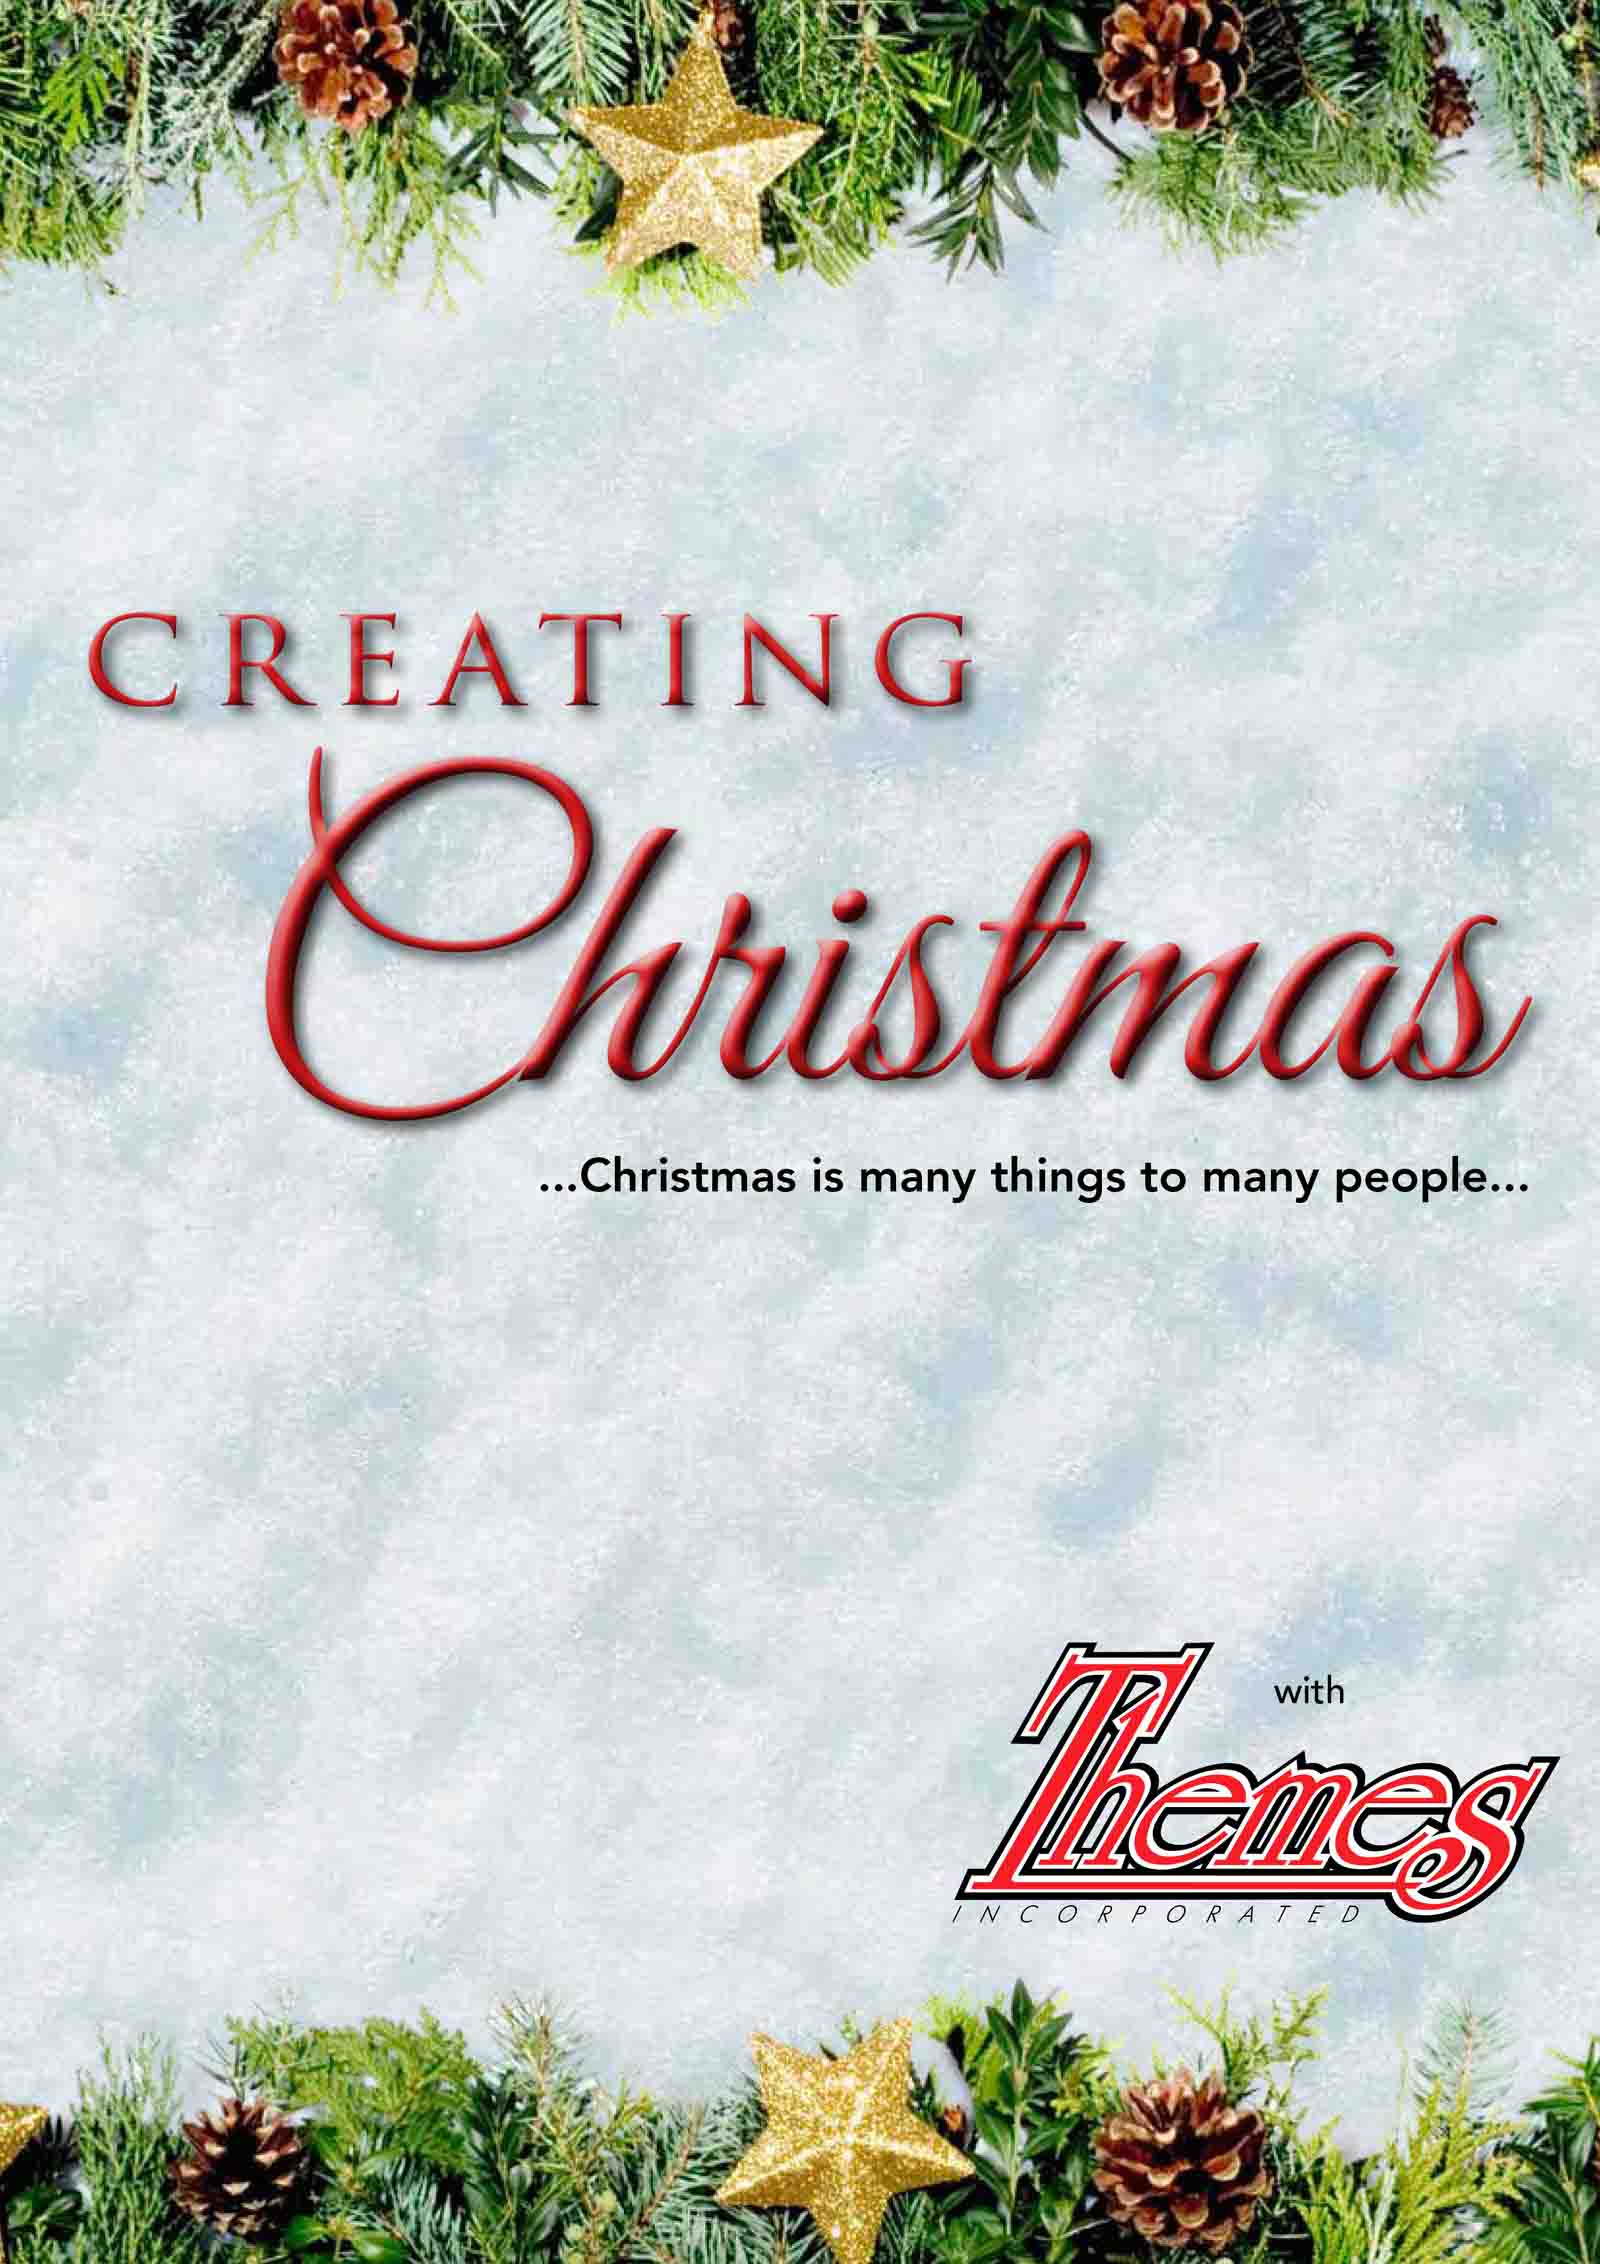 CELEBRATING CHRISTMAS